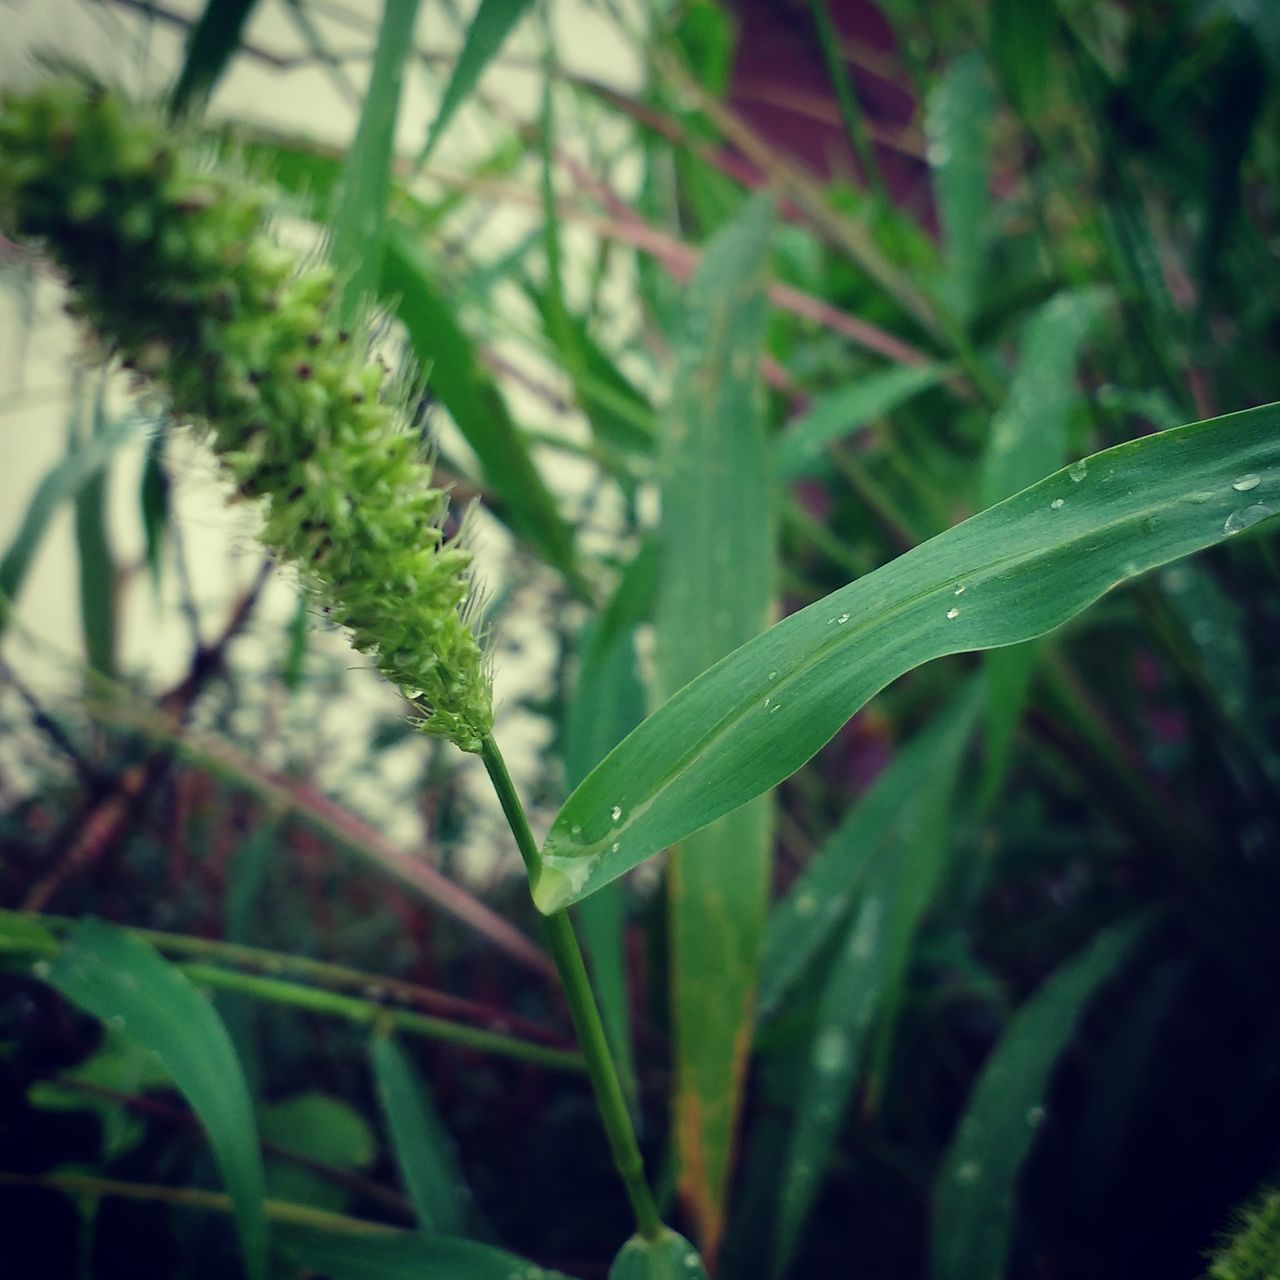 green color, leaf, growth, plant, nature, close-up, no people, day, focus on foreground, outdoors, grass, beauty in nature, drop, freshness, water, fragility